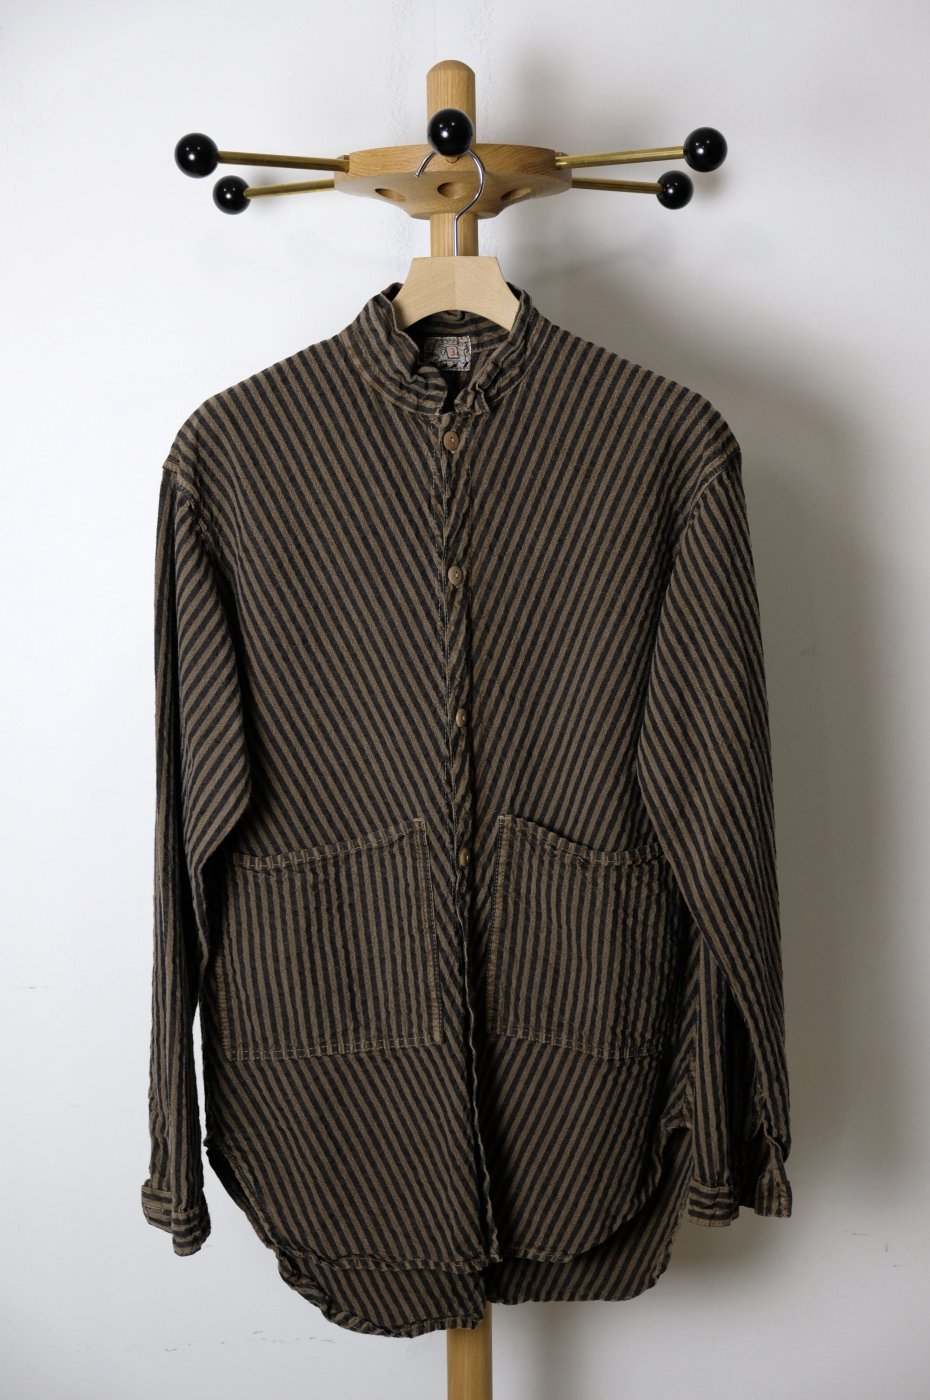 TENDER Co.-Type 444 L/S Boomerang Shirt -men's